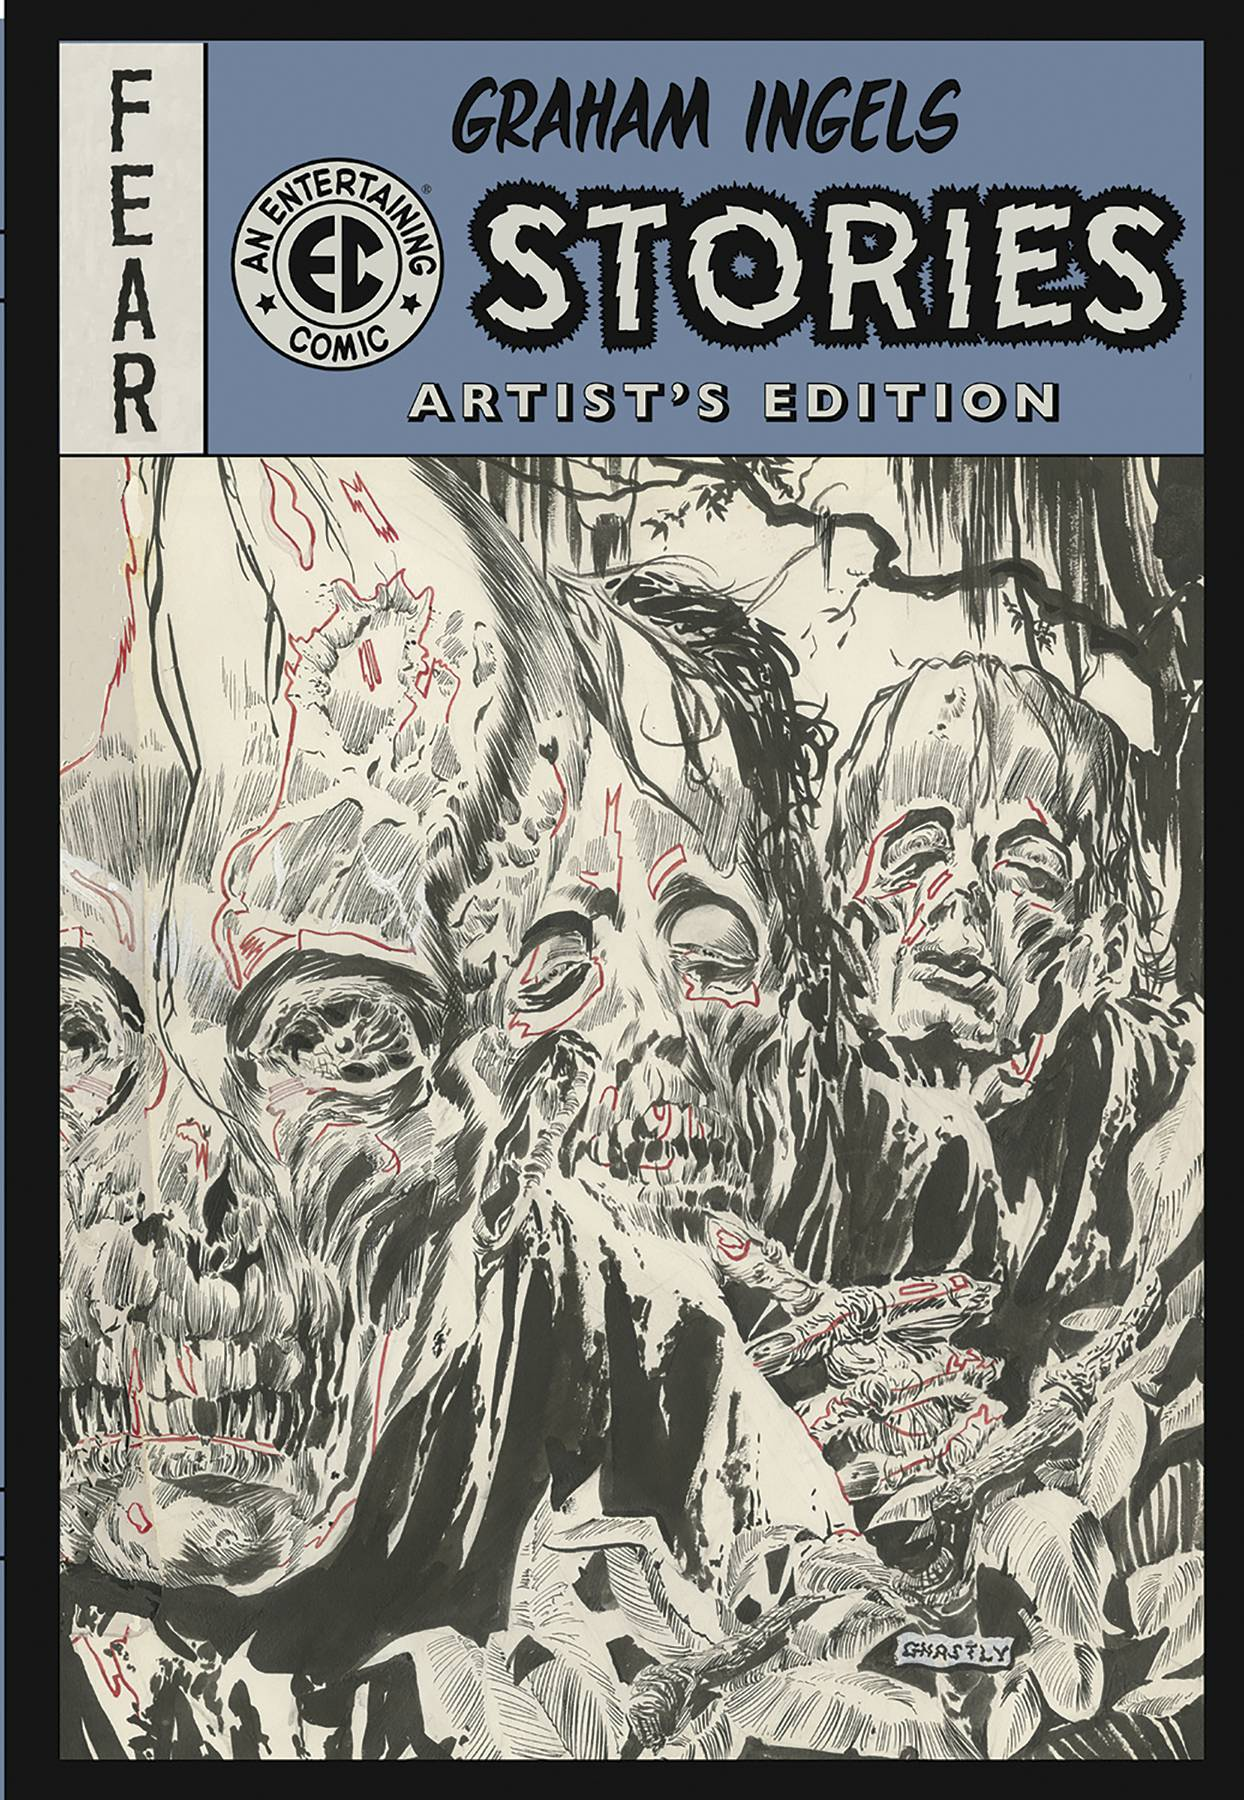 Review | Graham Ingels' EC Stories Artist's Edition